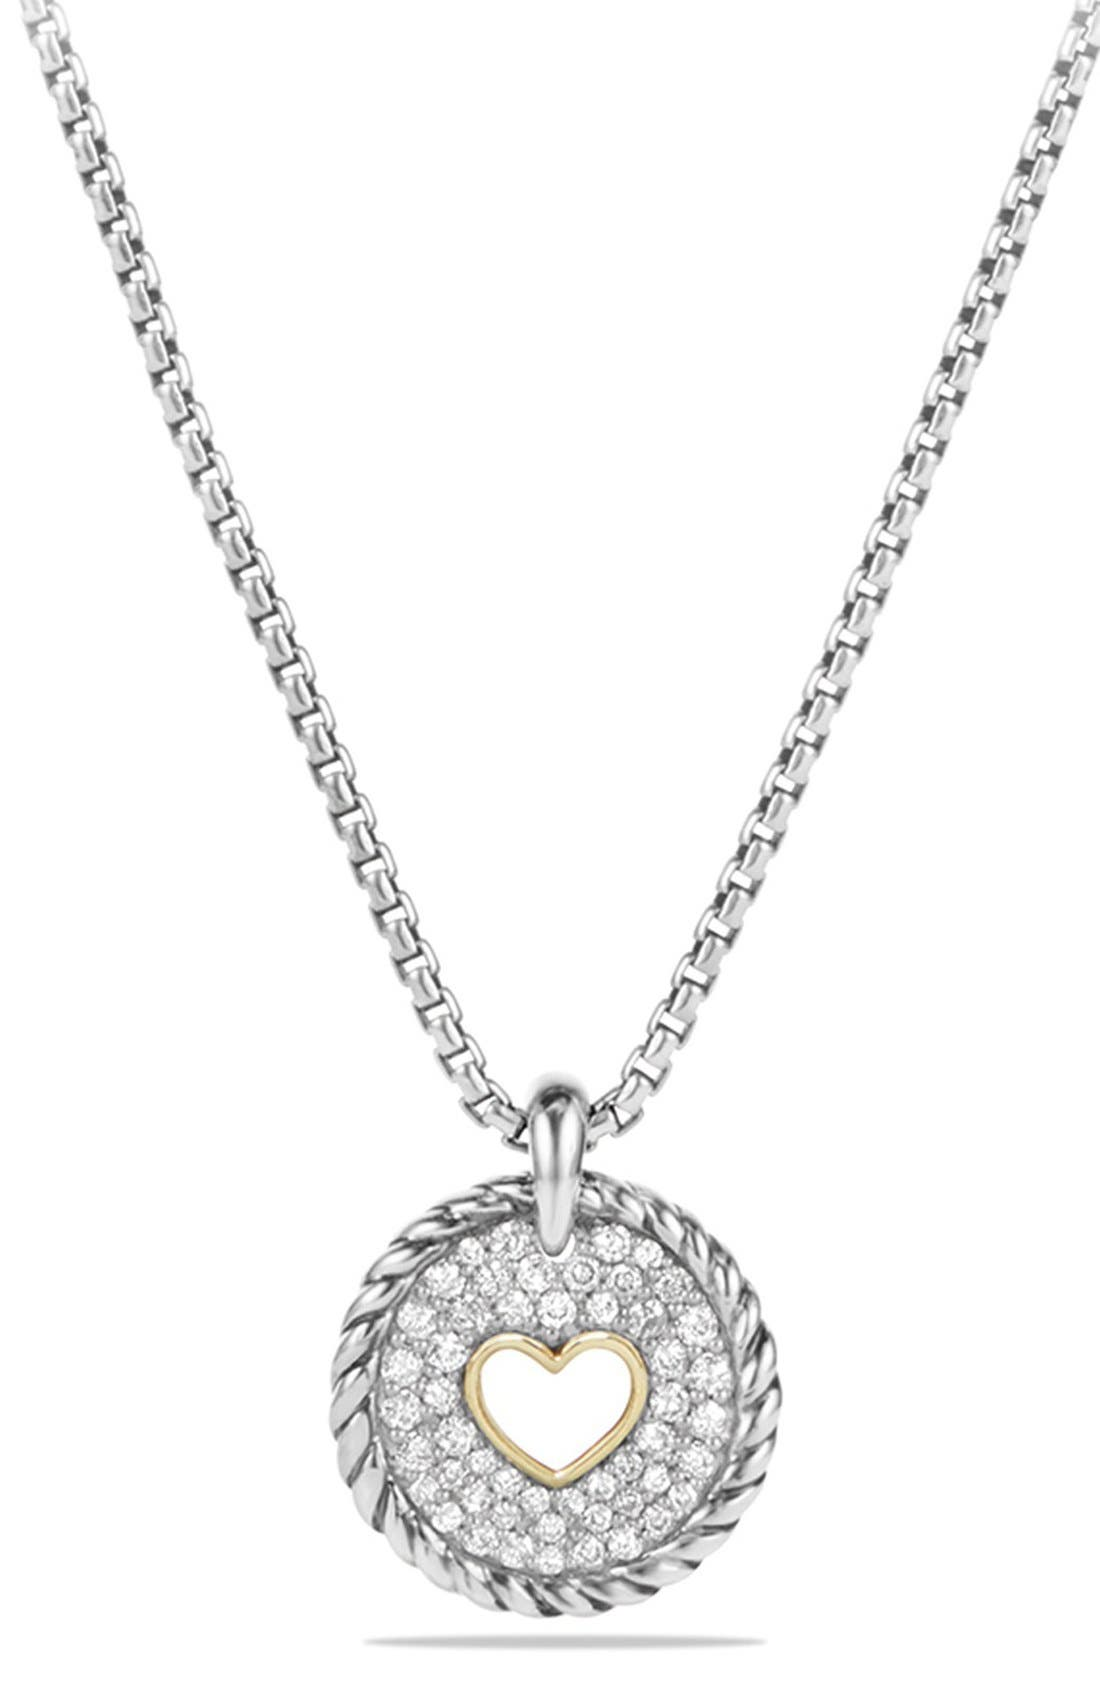 DAVID YURMAN Cable Collectibles Heart Charm with Diamonds